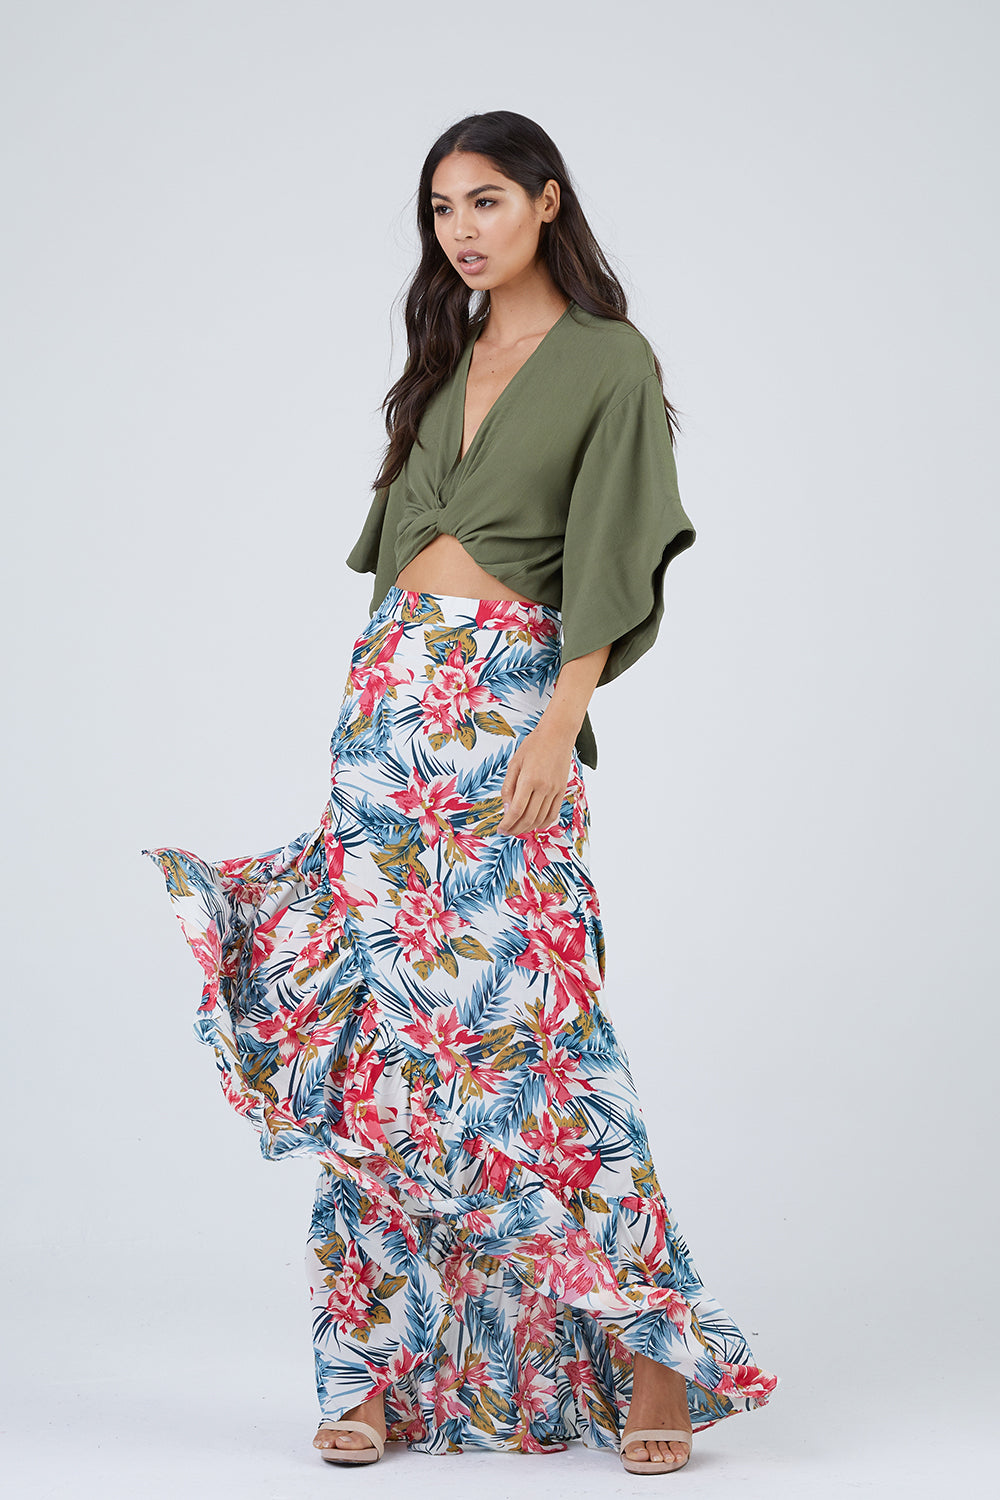 b8f319be STYLE:Vintage-inspired high-waisted ruffled hem maxi skirt with a high slit  in a vacation-ready tropical floral print.The full-length cascading ruffled  ...